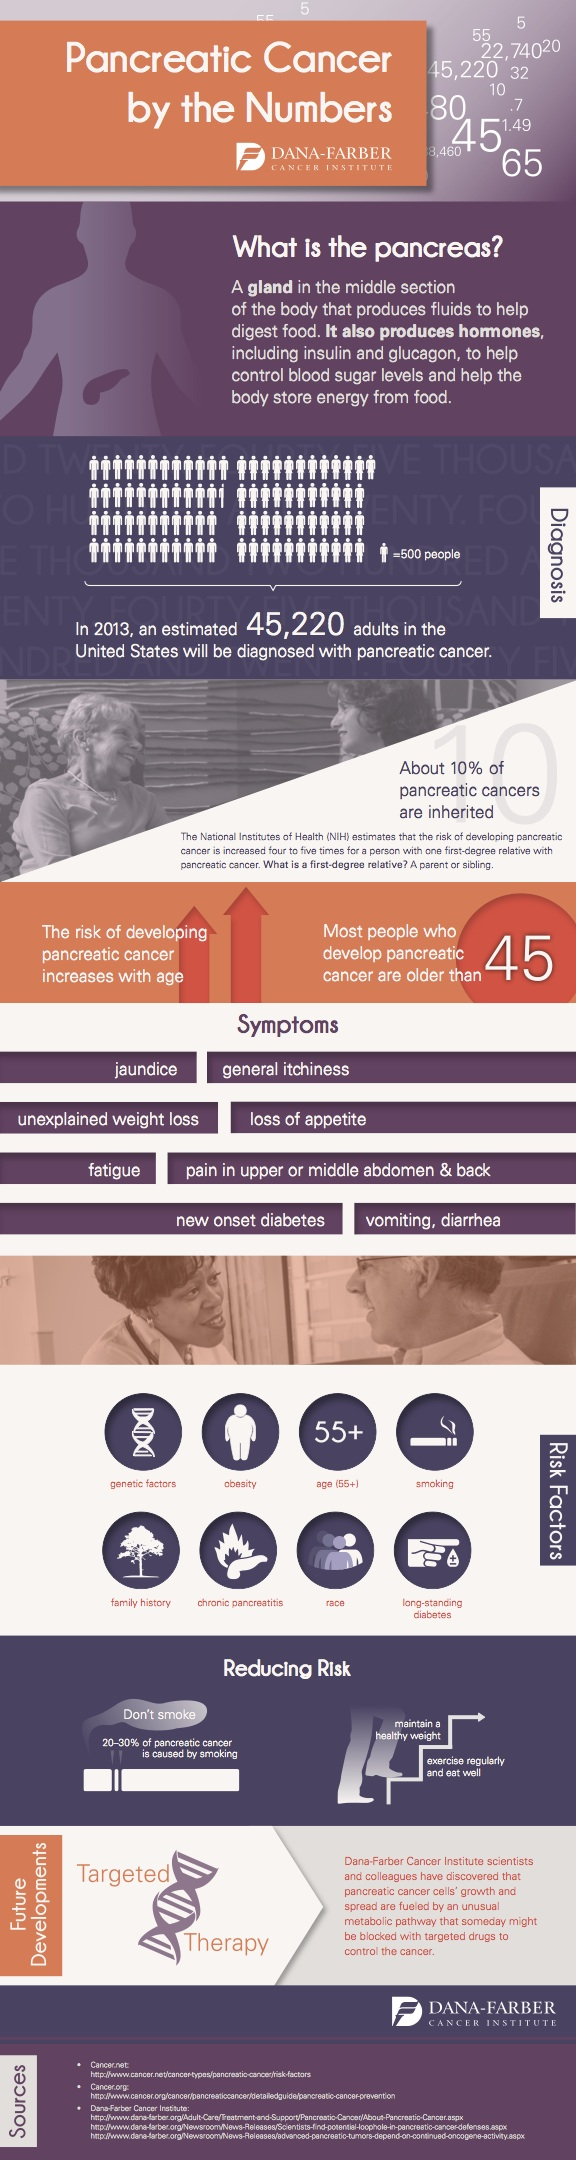 Pancreatic Cancer Infographic (resized)